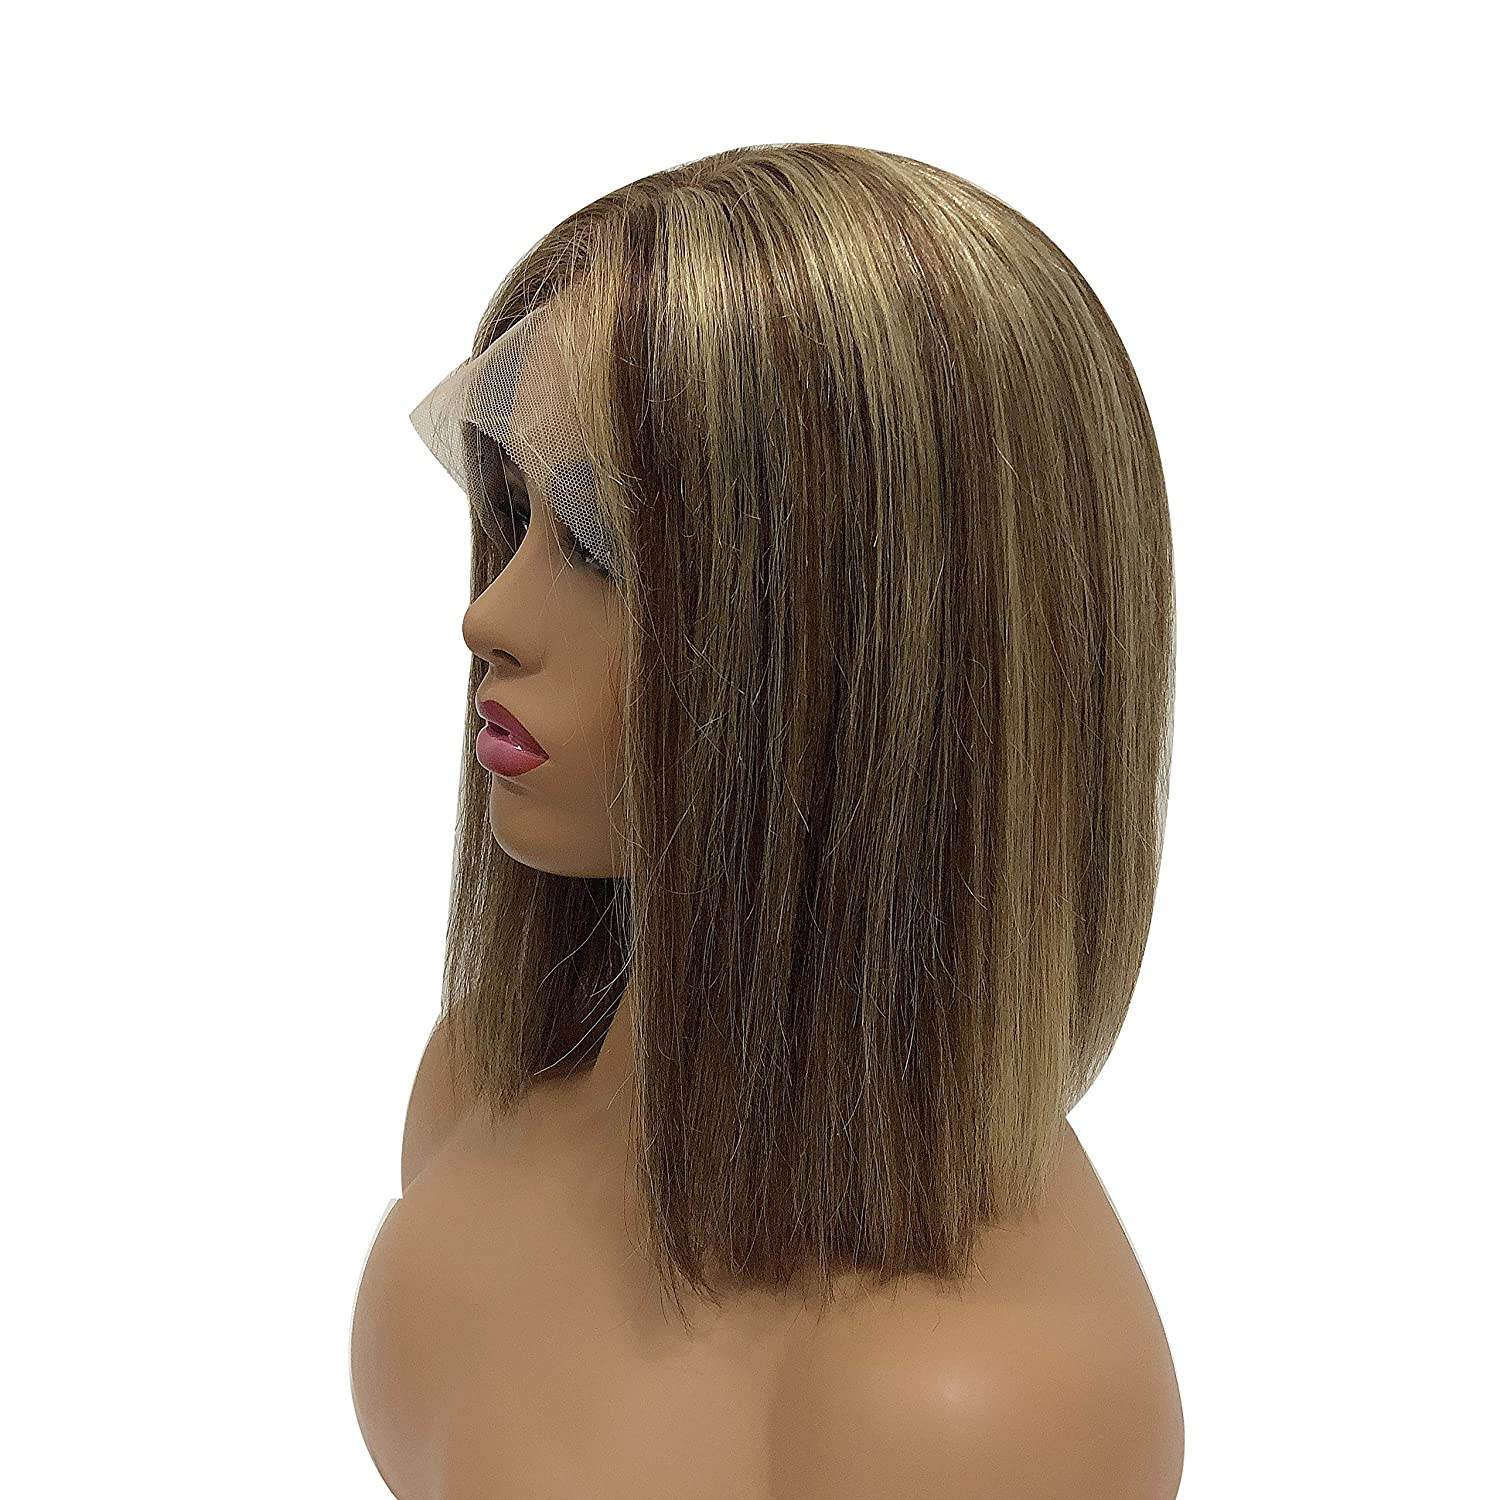 Human Hair Short Bob wigs free shipping 13x4 Wigs Lace Front Pre Ranking TOP7 Plucked Bleac